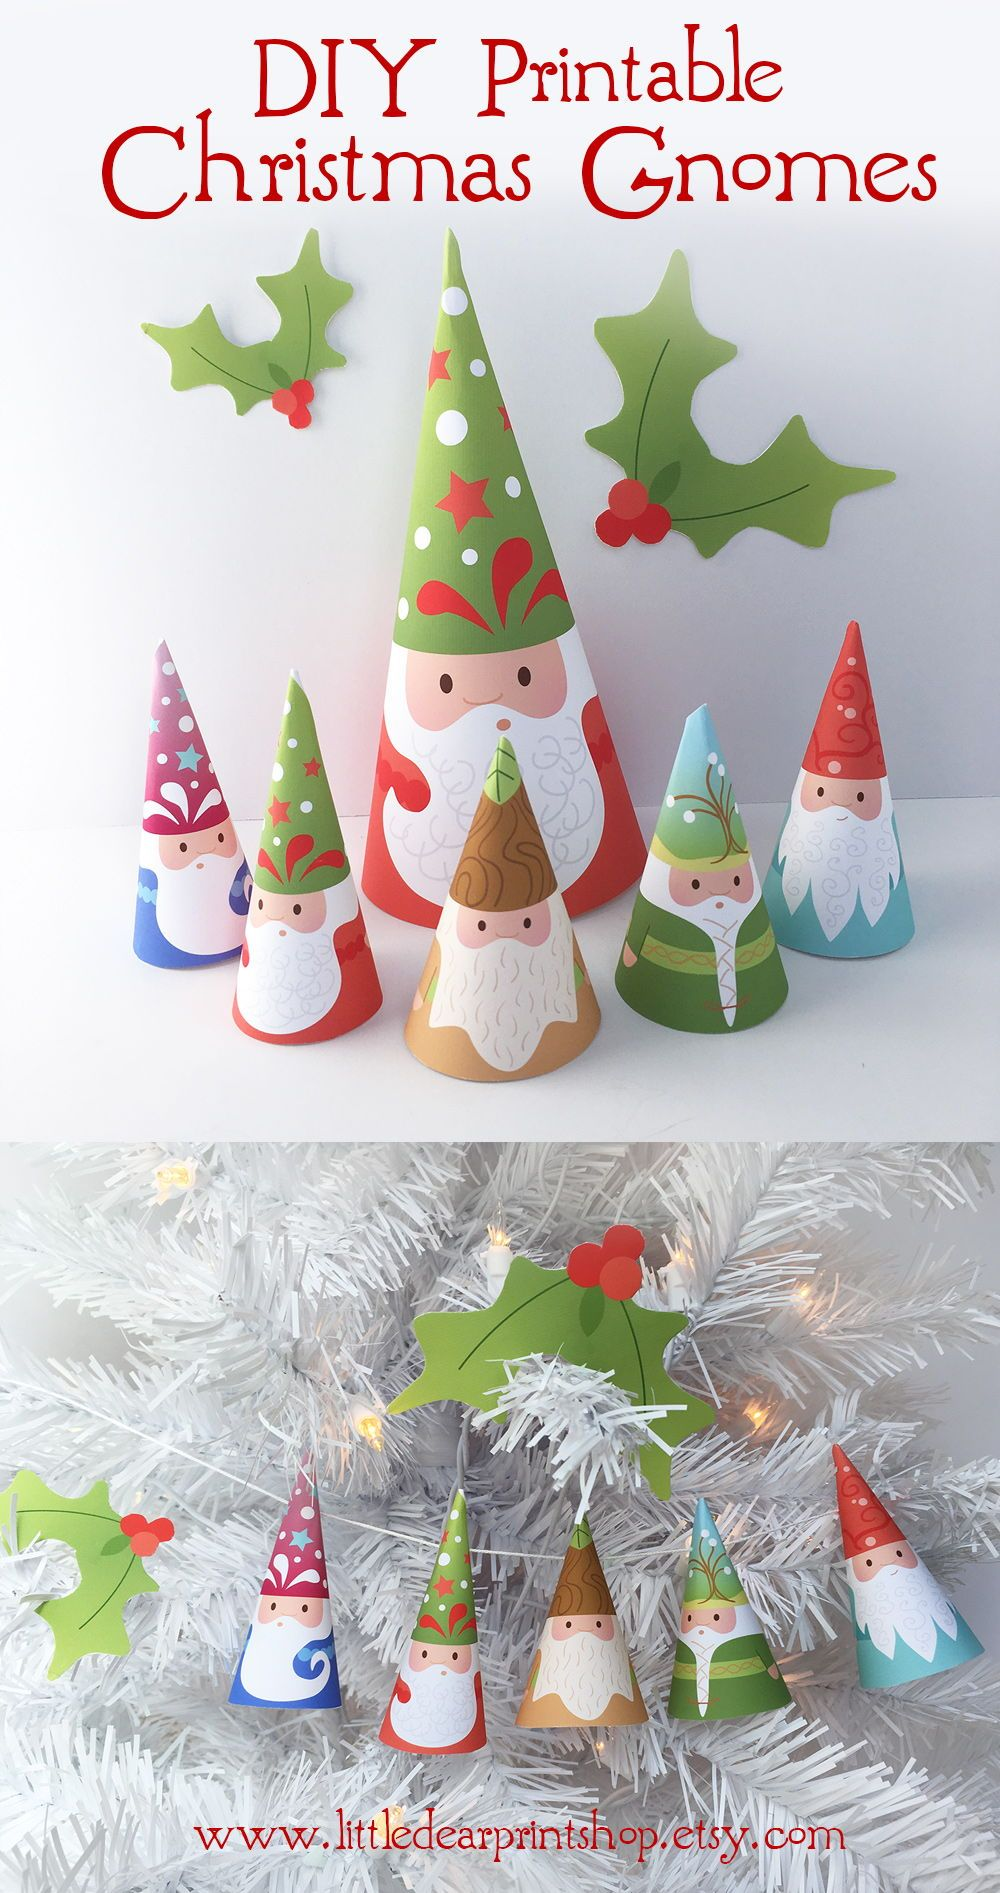 How To Make Your Own Tree Stand Printable Woodland Gnomes Diy Art Santa Claus Garland Christmas